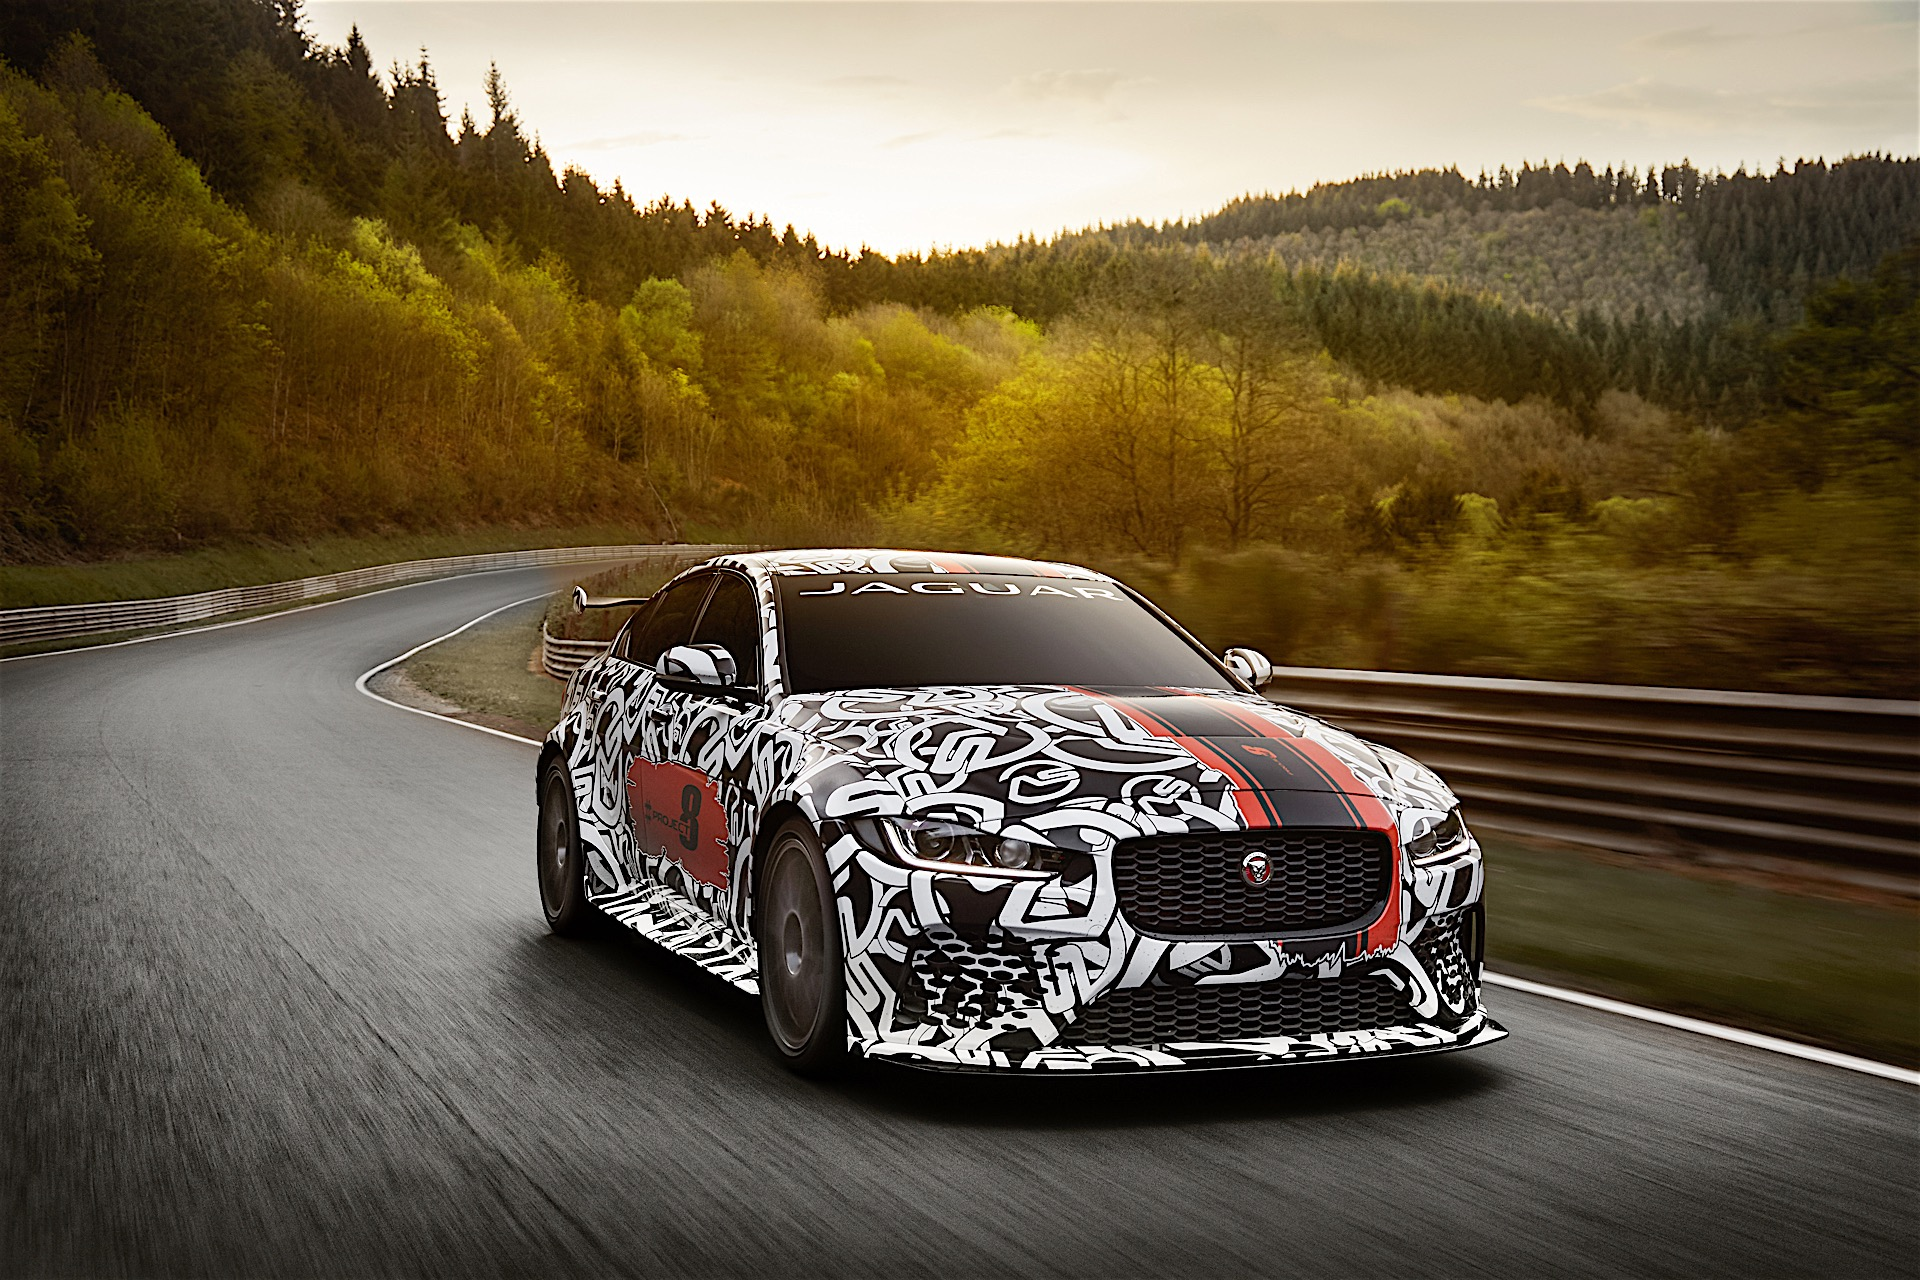 Jaguar XE SV Project 8 confirmed, most powerful Jaguar ever